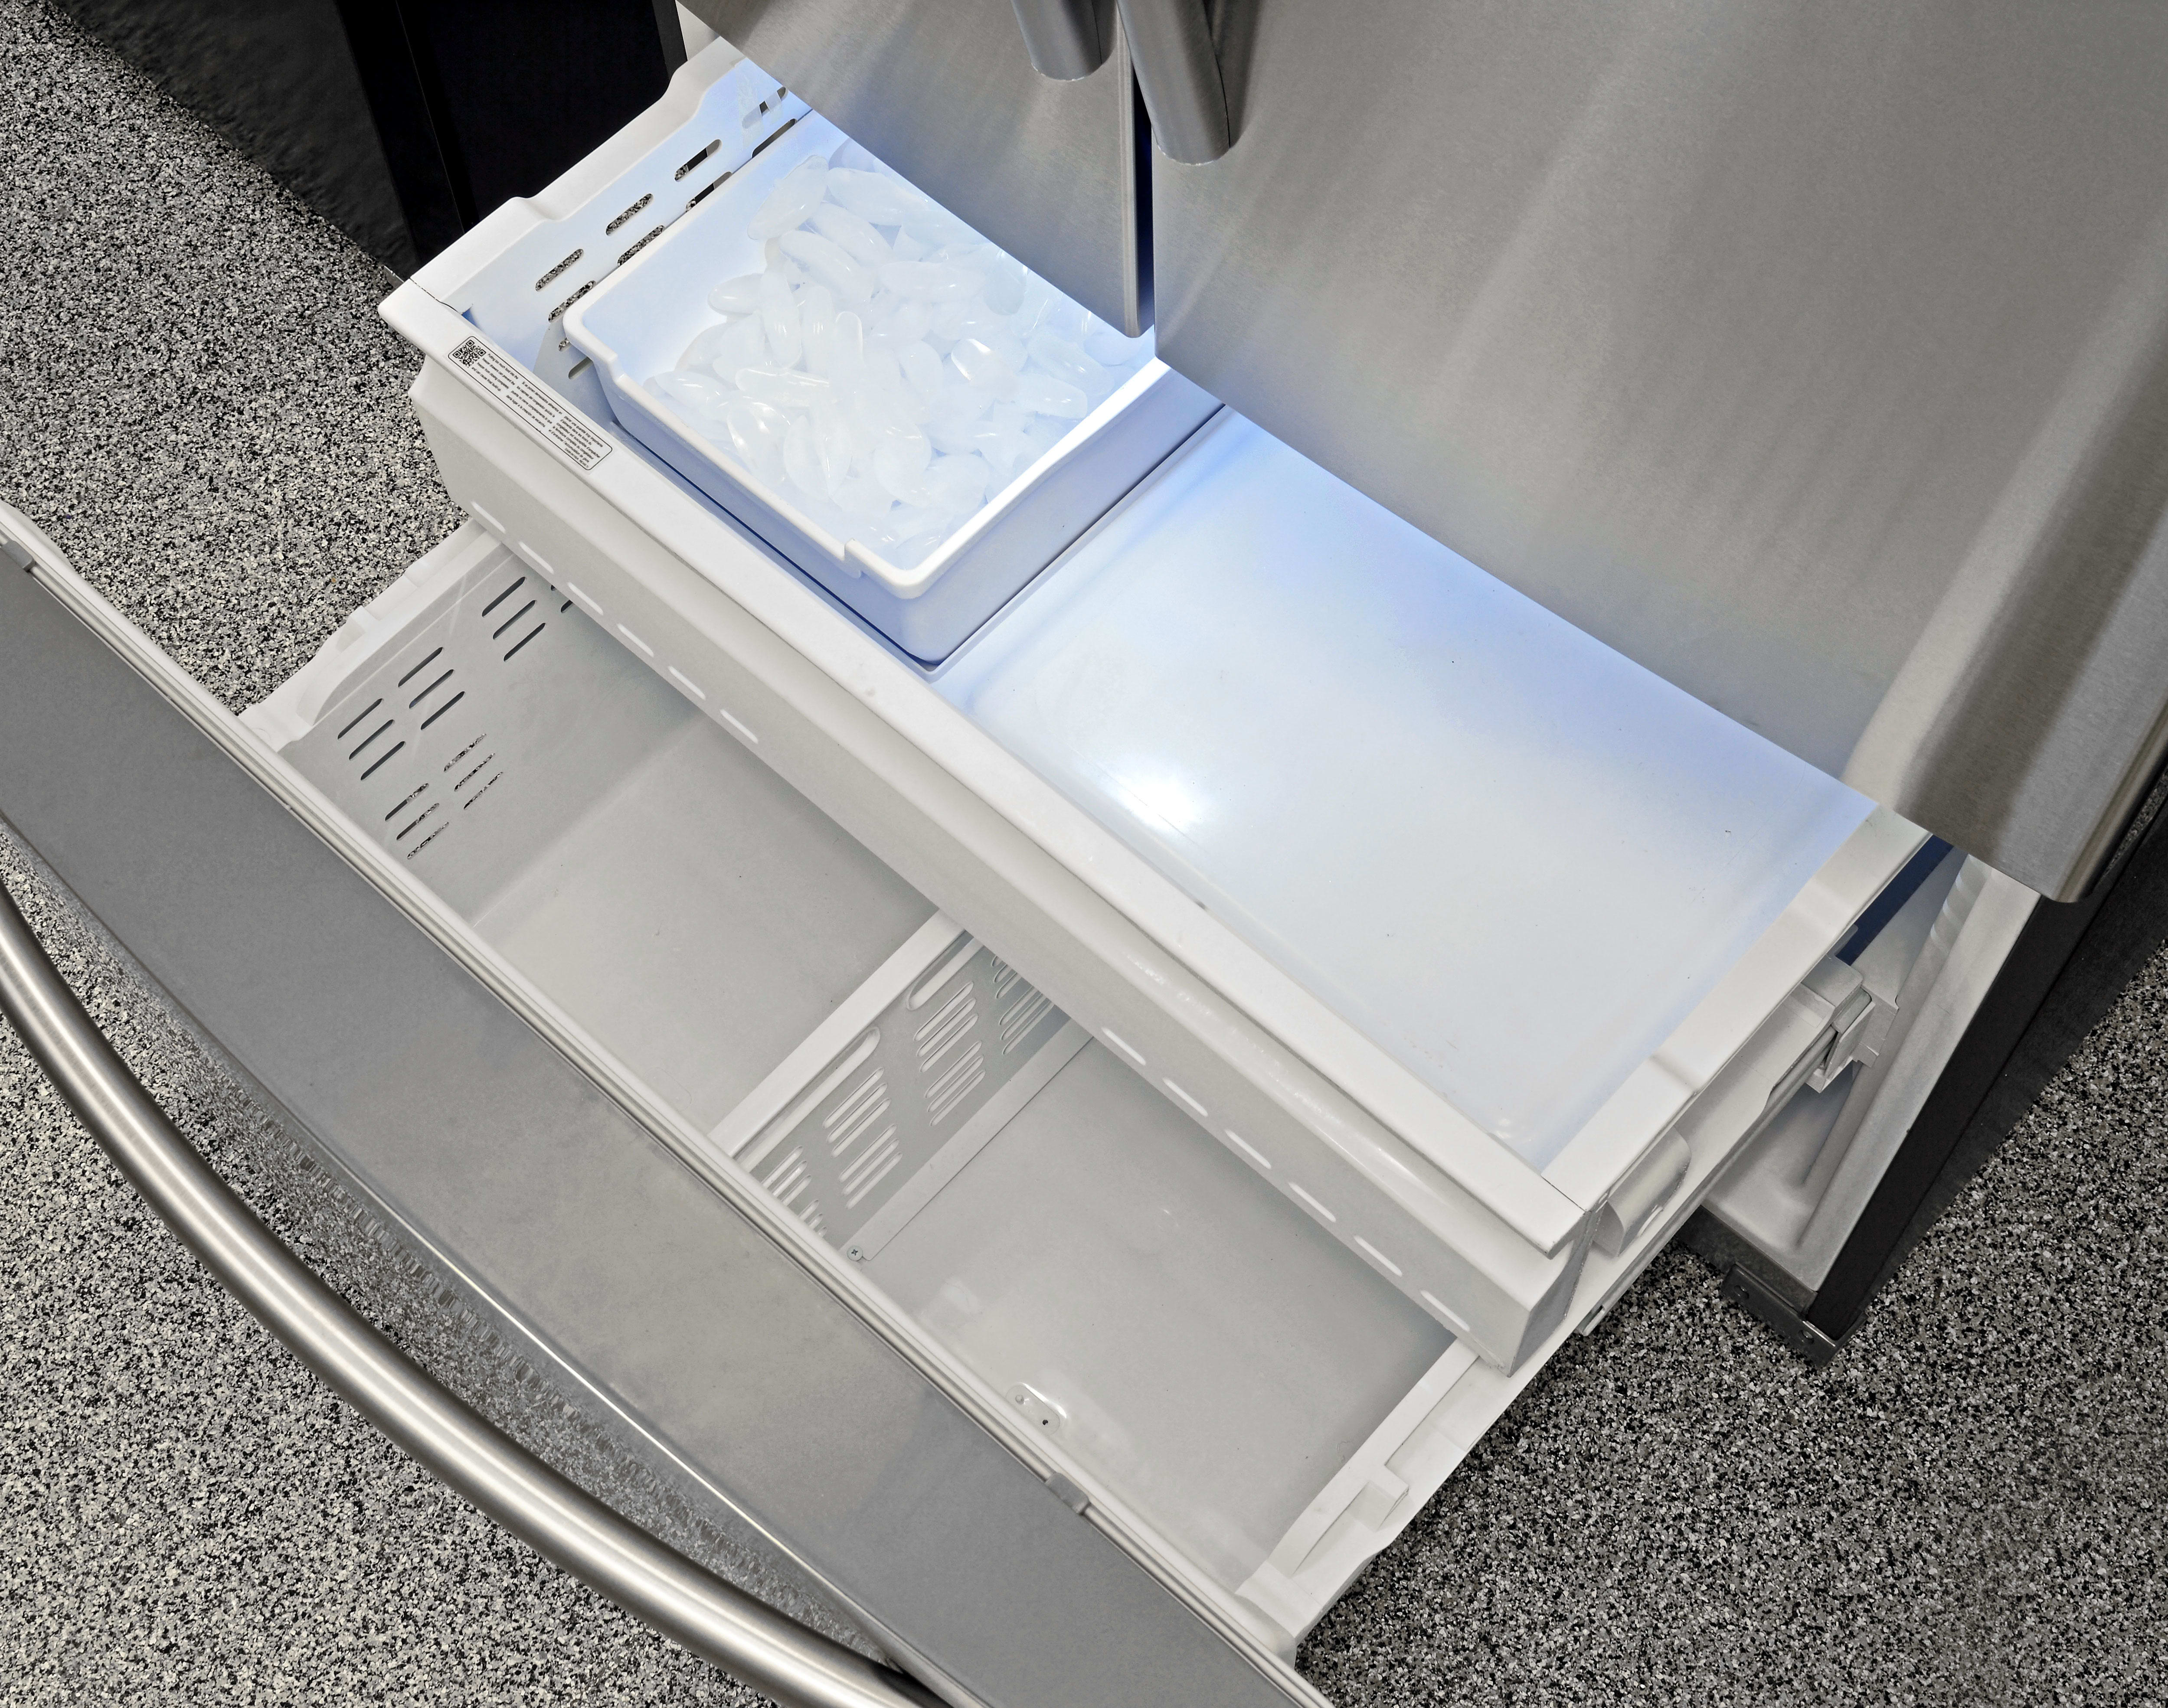 The Samsung RF260BEAESR's pull-out freezer is spacious, and contains an ice maker with removable bucket.